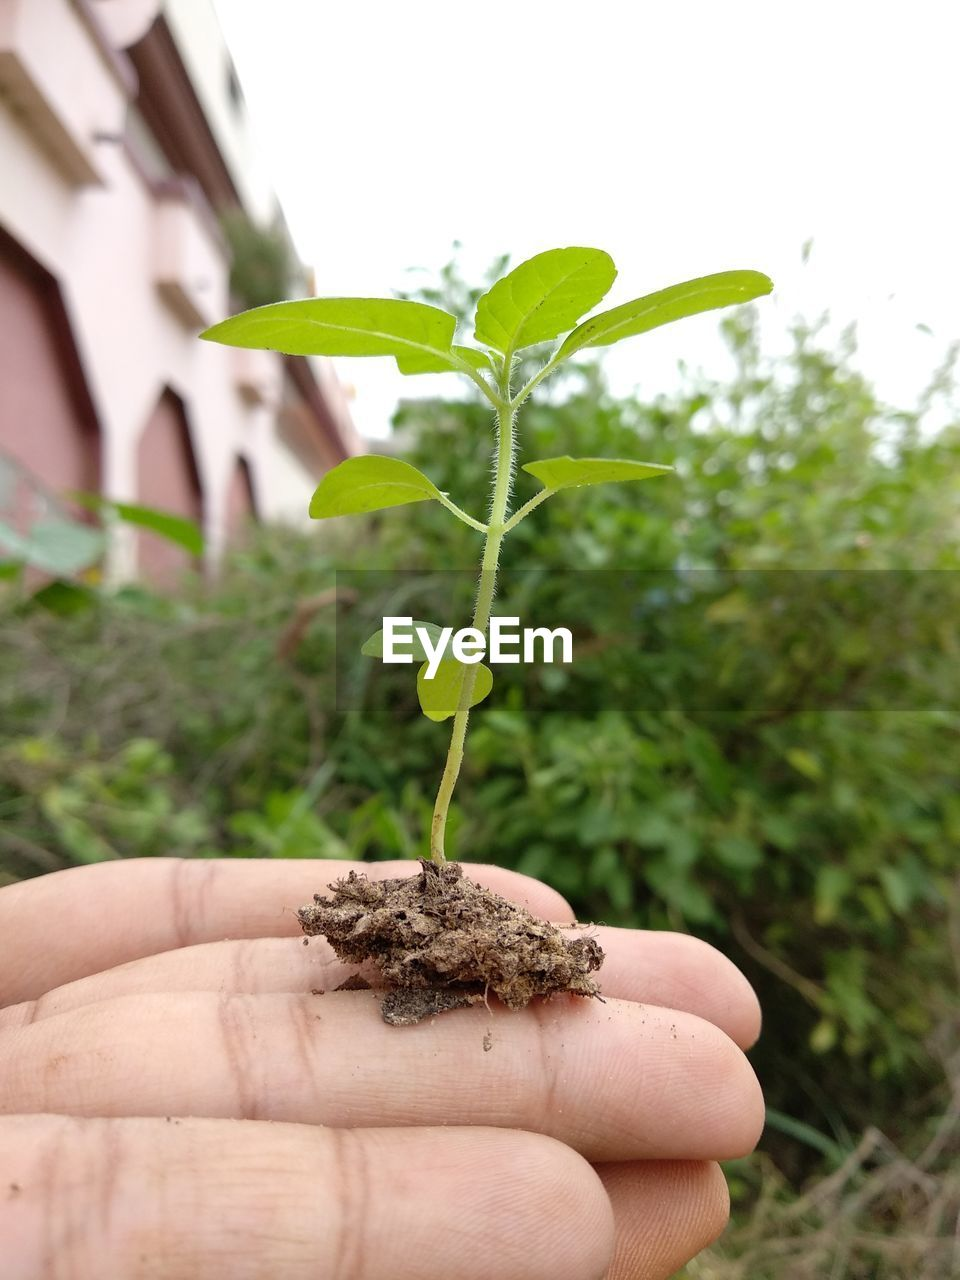 human hand, human body part, hand, one person, plant, growth, body part, plant part, nature, leaf, focus on foreground, human finger, finger, real people, holding, green color, close-up, unrecognizable person, day, beginnings, outdoors, small, care, human limb